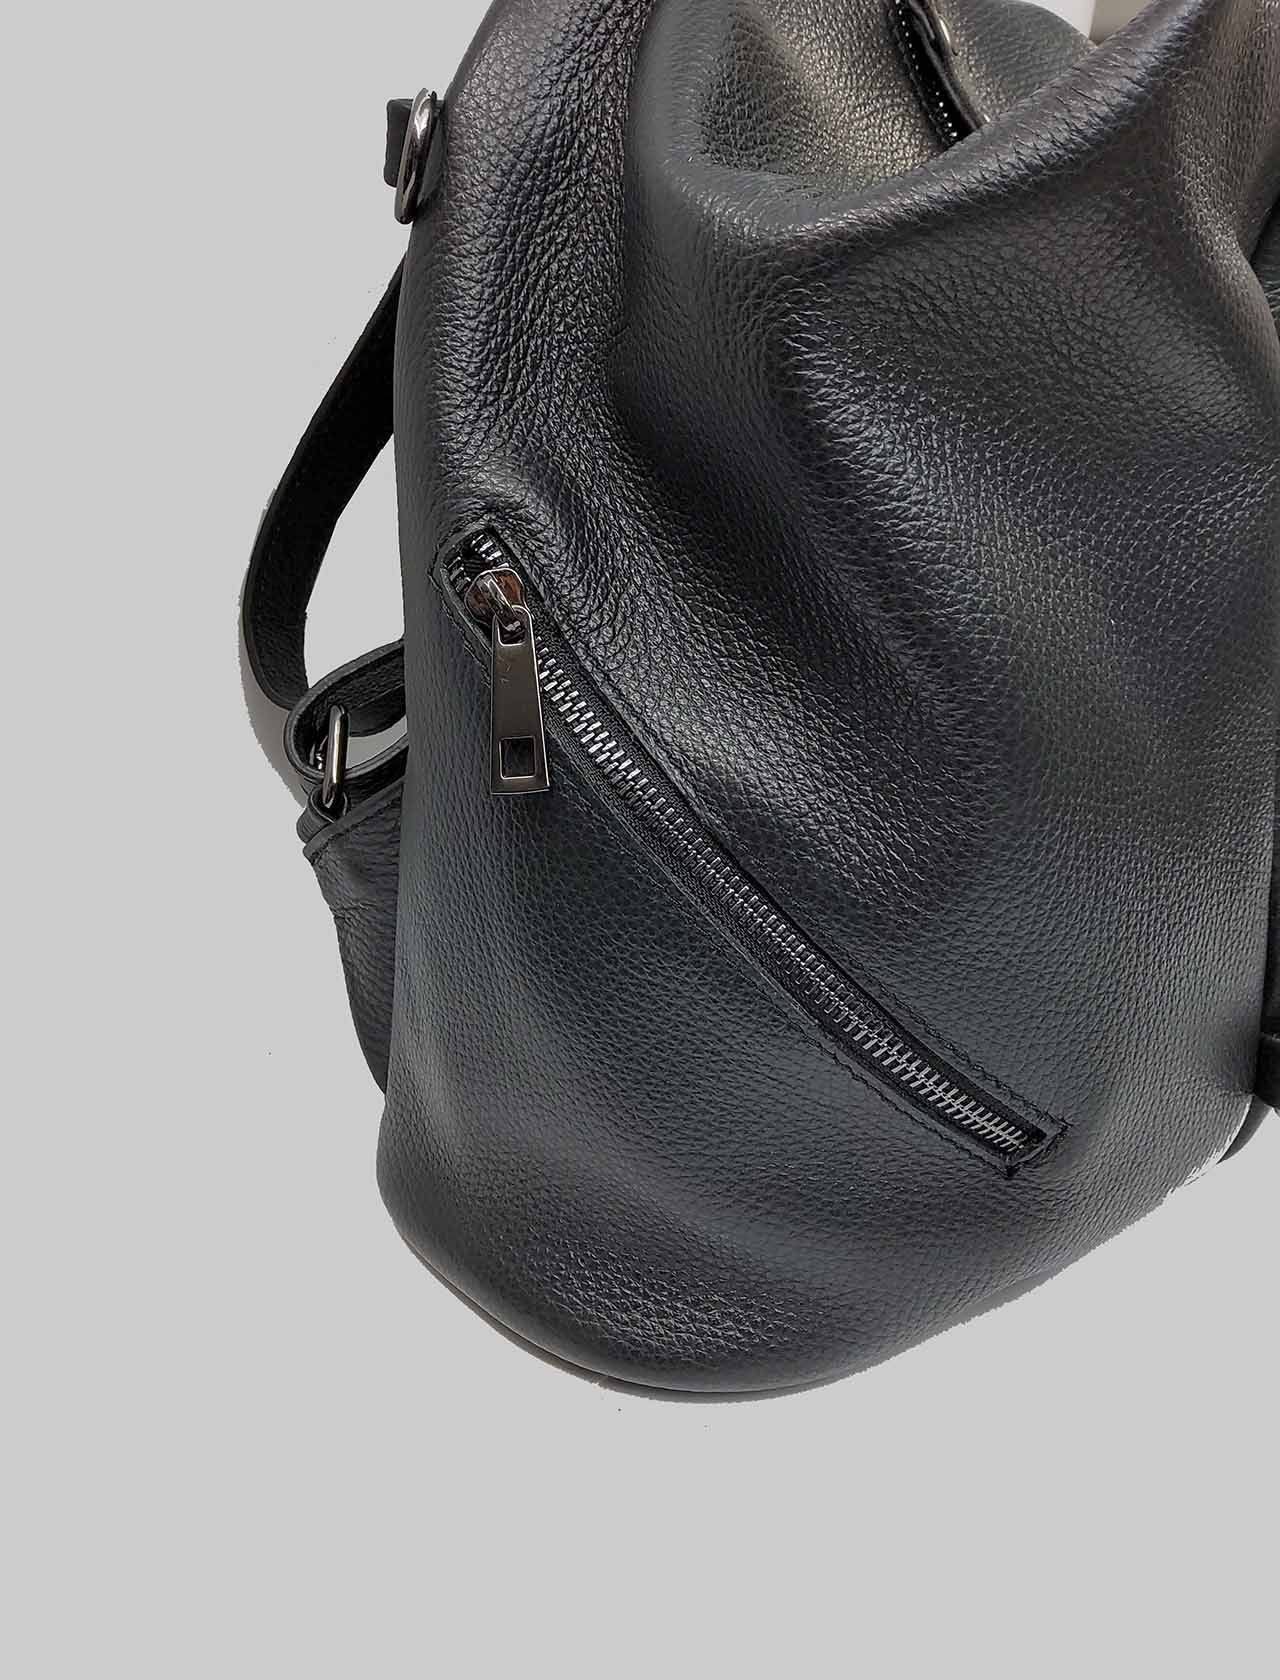 Woman Backpacks in Black Leather with Zip Closure and Pull with Studs Adjustable Shoulder Straps in Leather Spatarella | Bags and backpacks | PE0214001